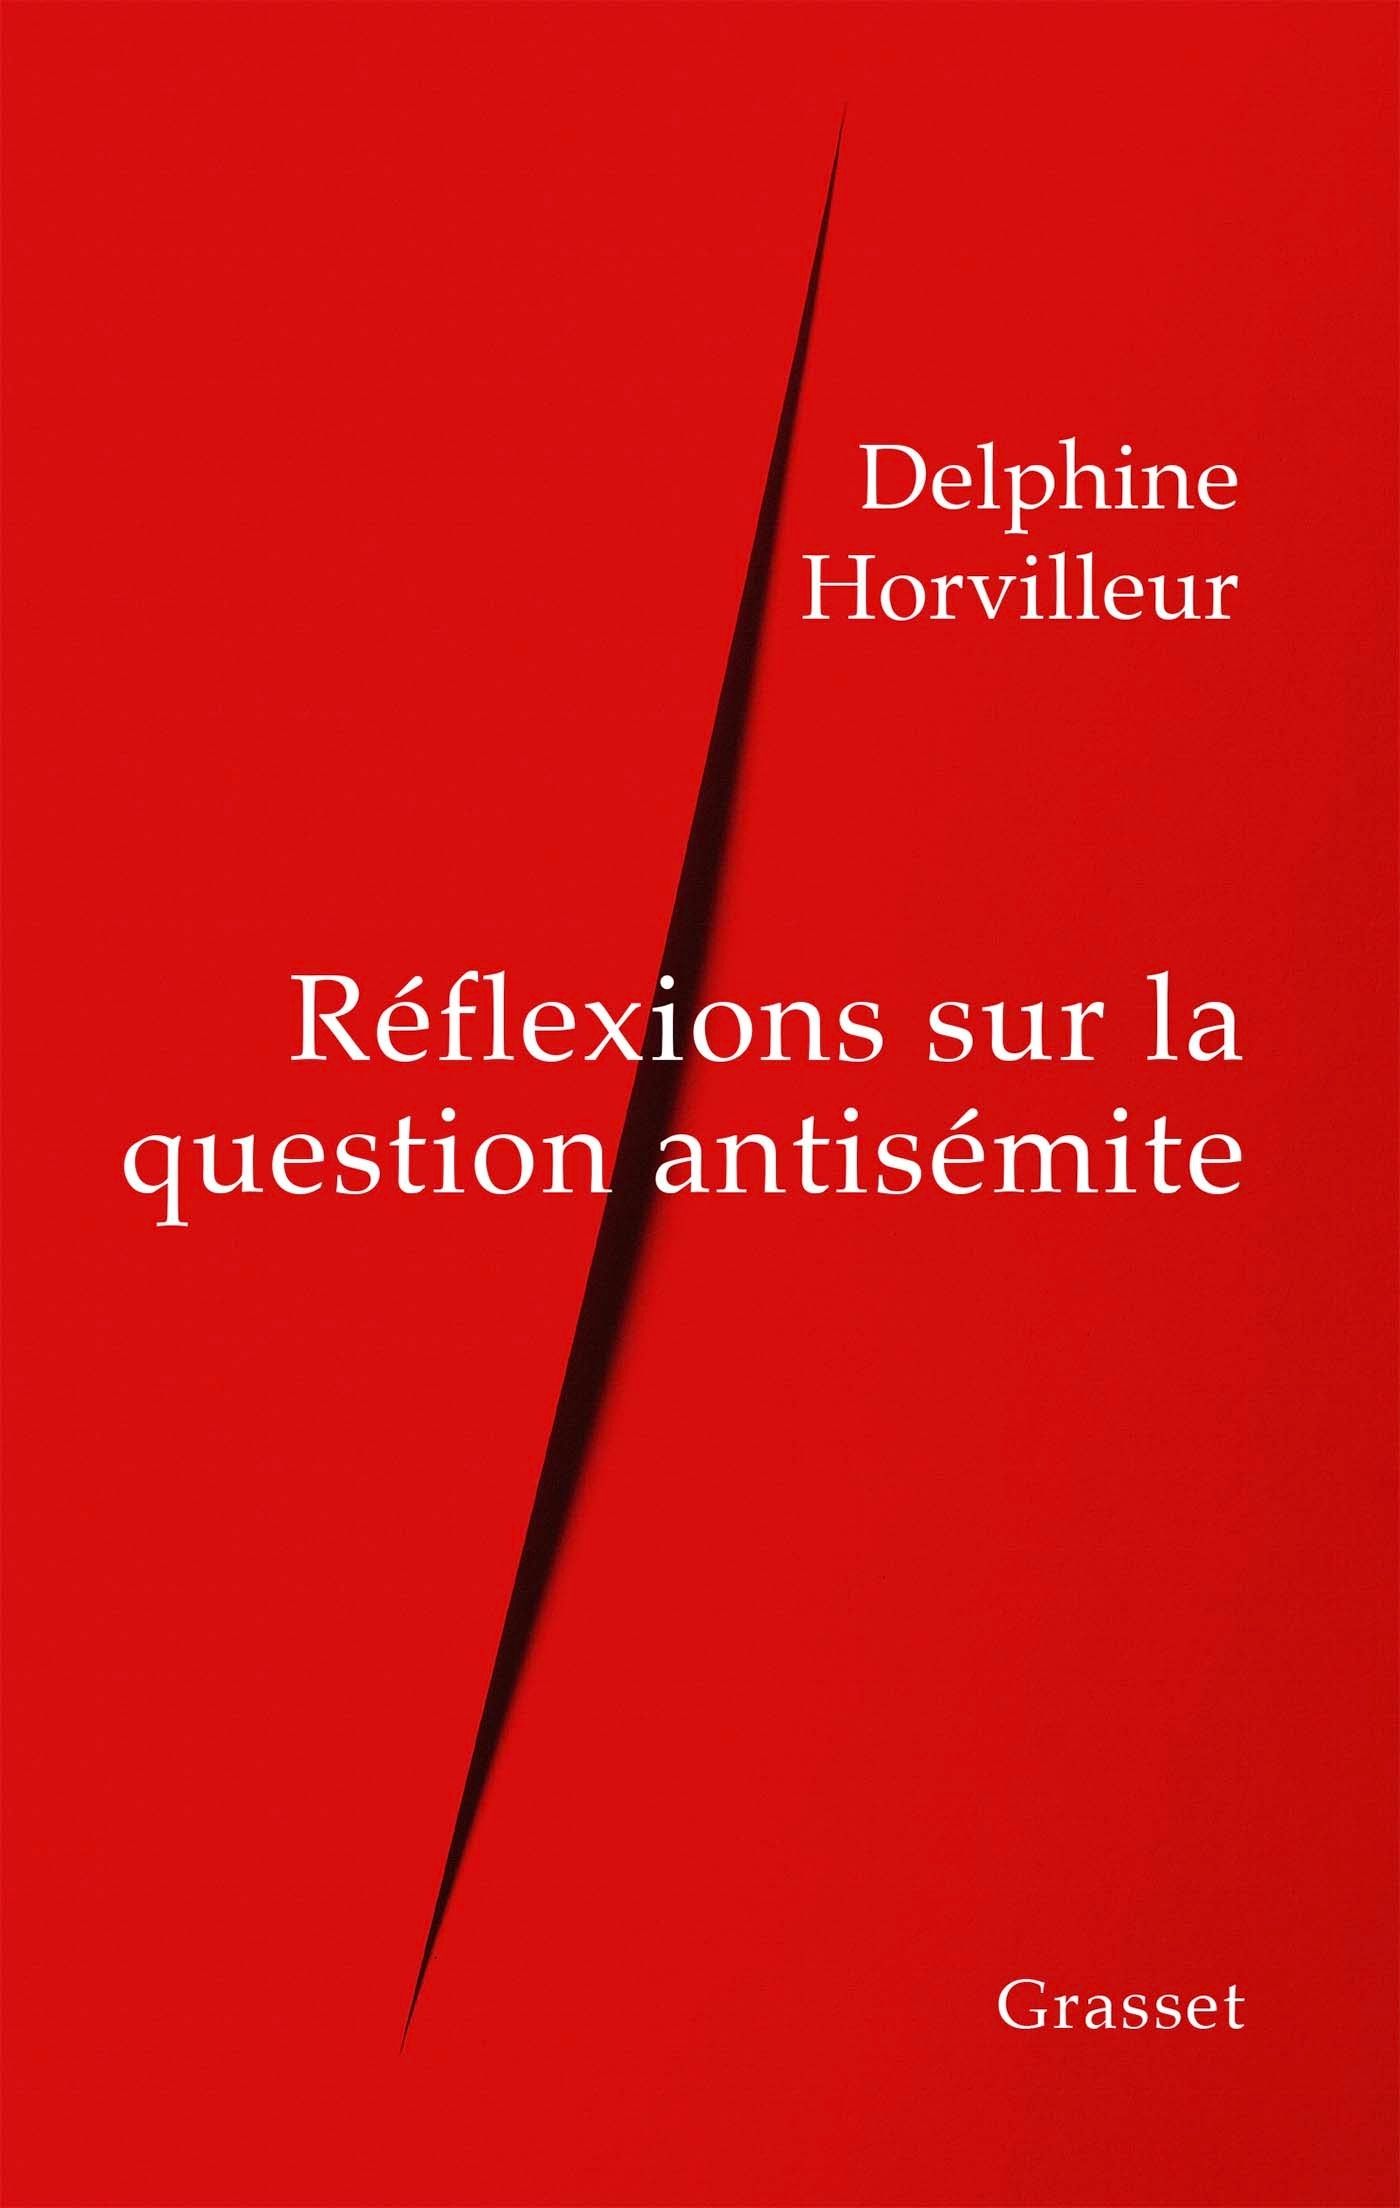 REFLEXIONS SUR LA QUESTION ANTISEMITE